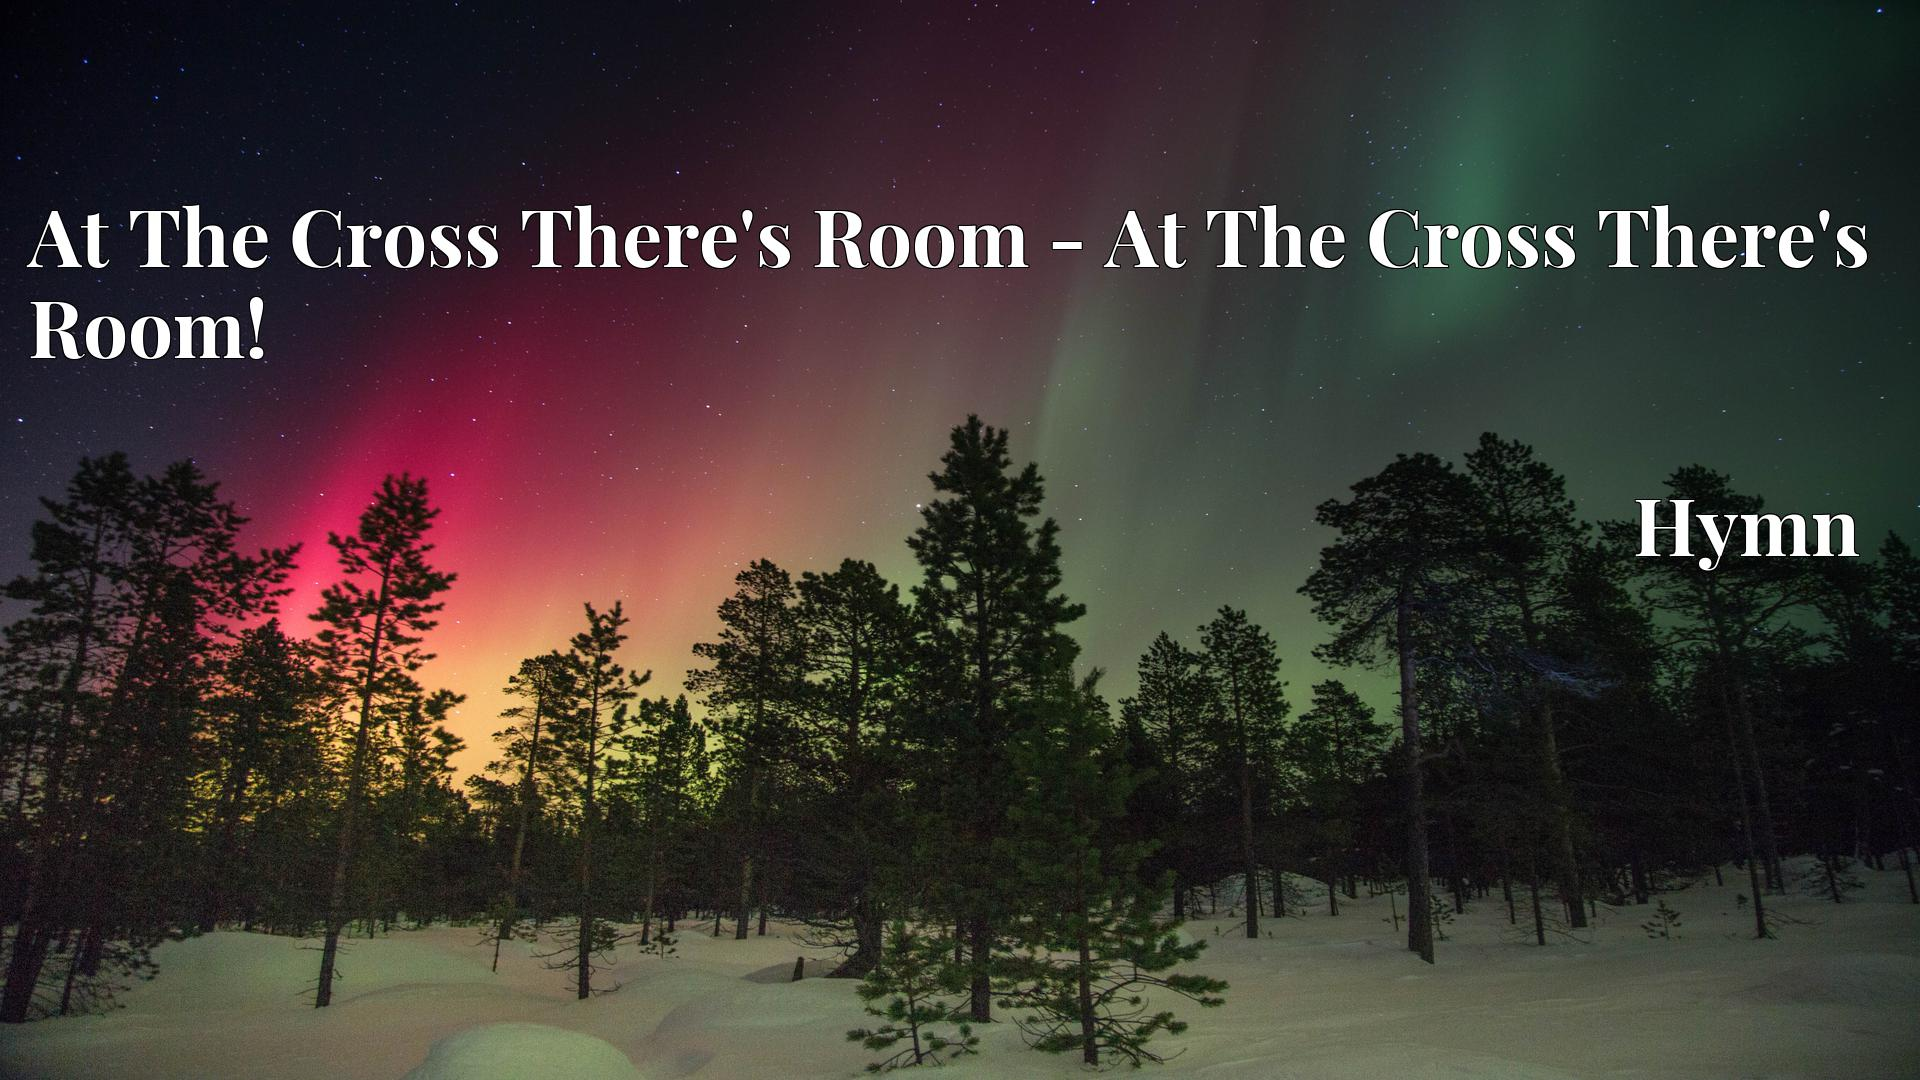 At The Cross There's Room - At The Cross There's Room! - Hymn